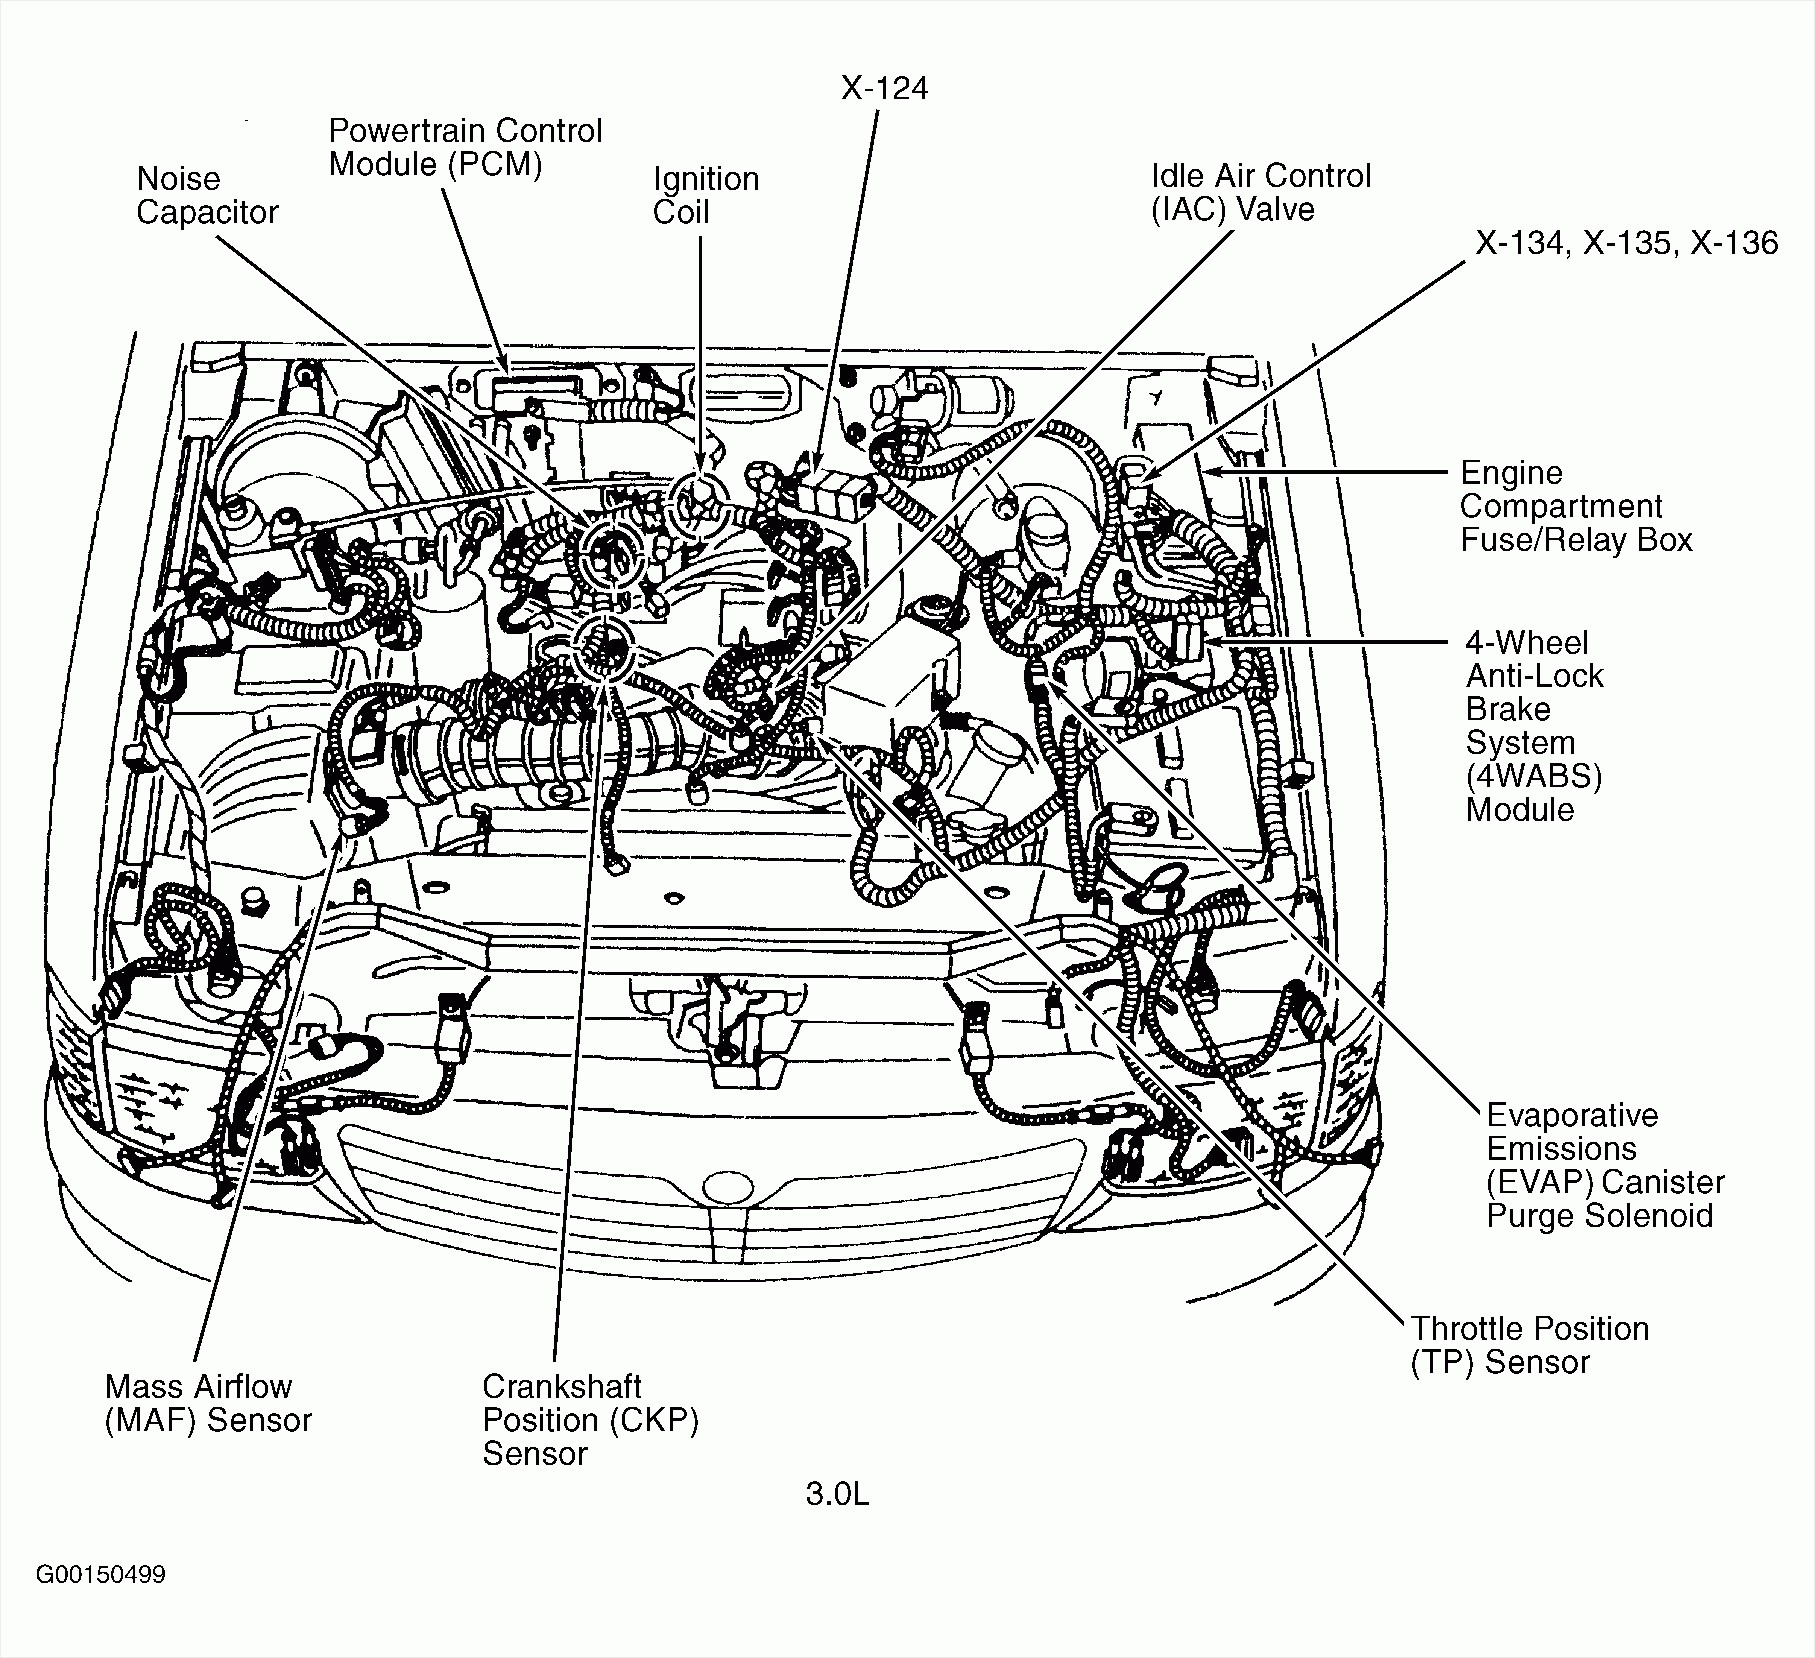 [DIAGRAM_38IS]  2010 Lacrosse Engine Diagram Diagram Base Website Engine Diagram -  UMLDIAGRAM.ITASEINAUDI.IT | Buick Lacrosse 3 6 Engine Diagram |  | Diagram Base Website Full Edition